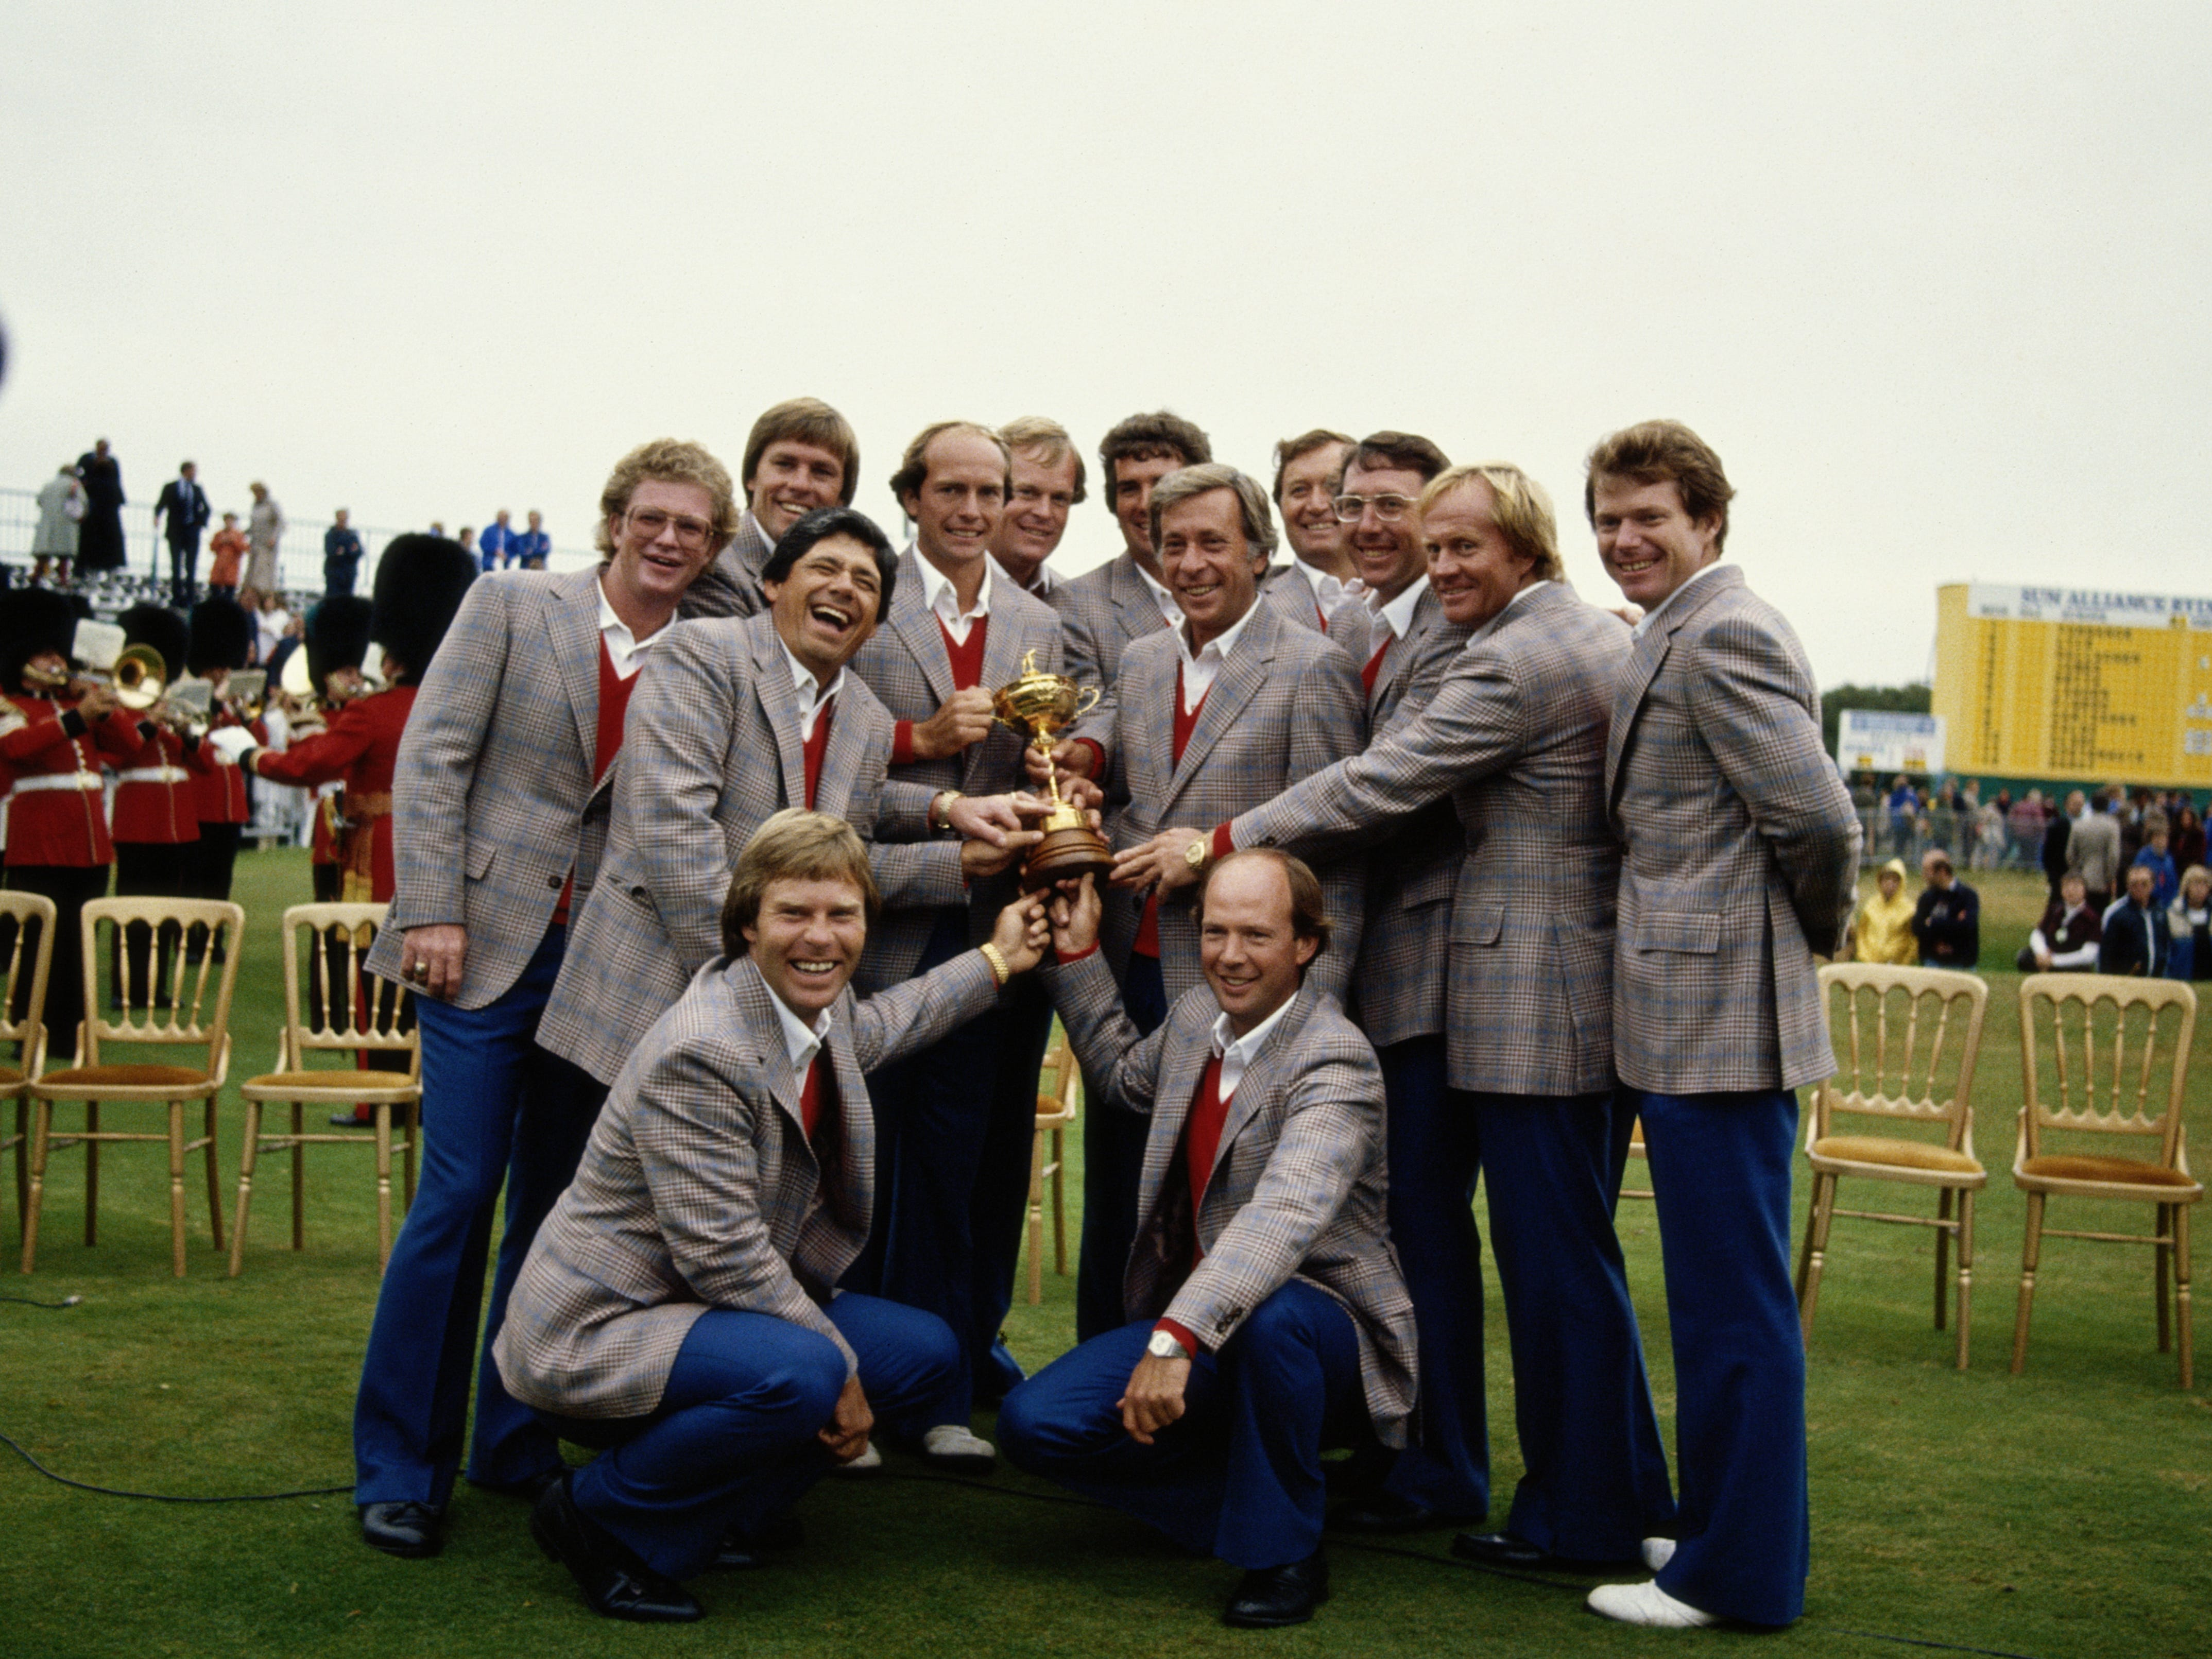 Team USA, 1981: The team celebrates with the trophy after defeating Team Europe.